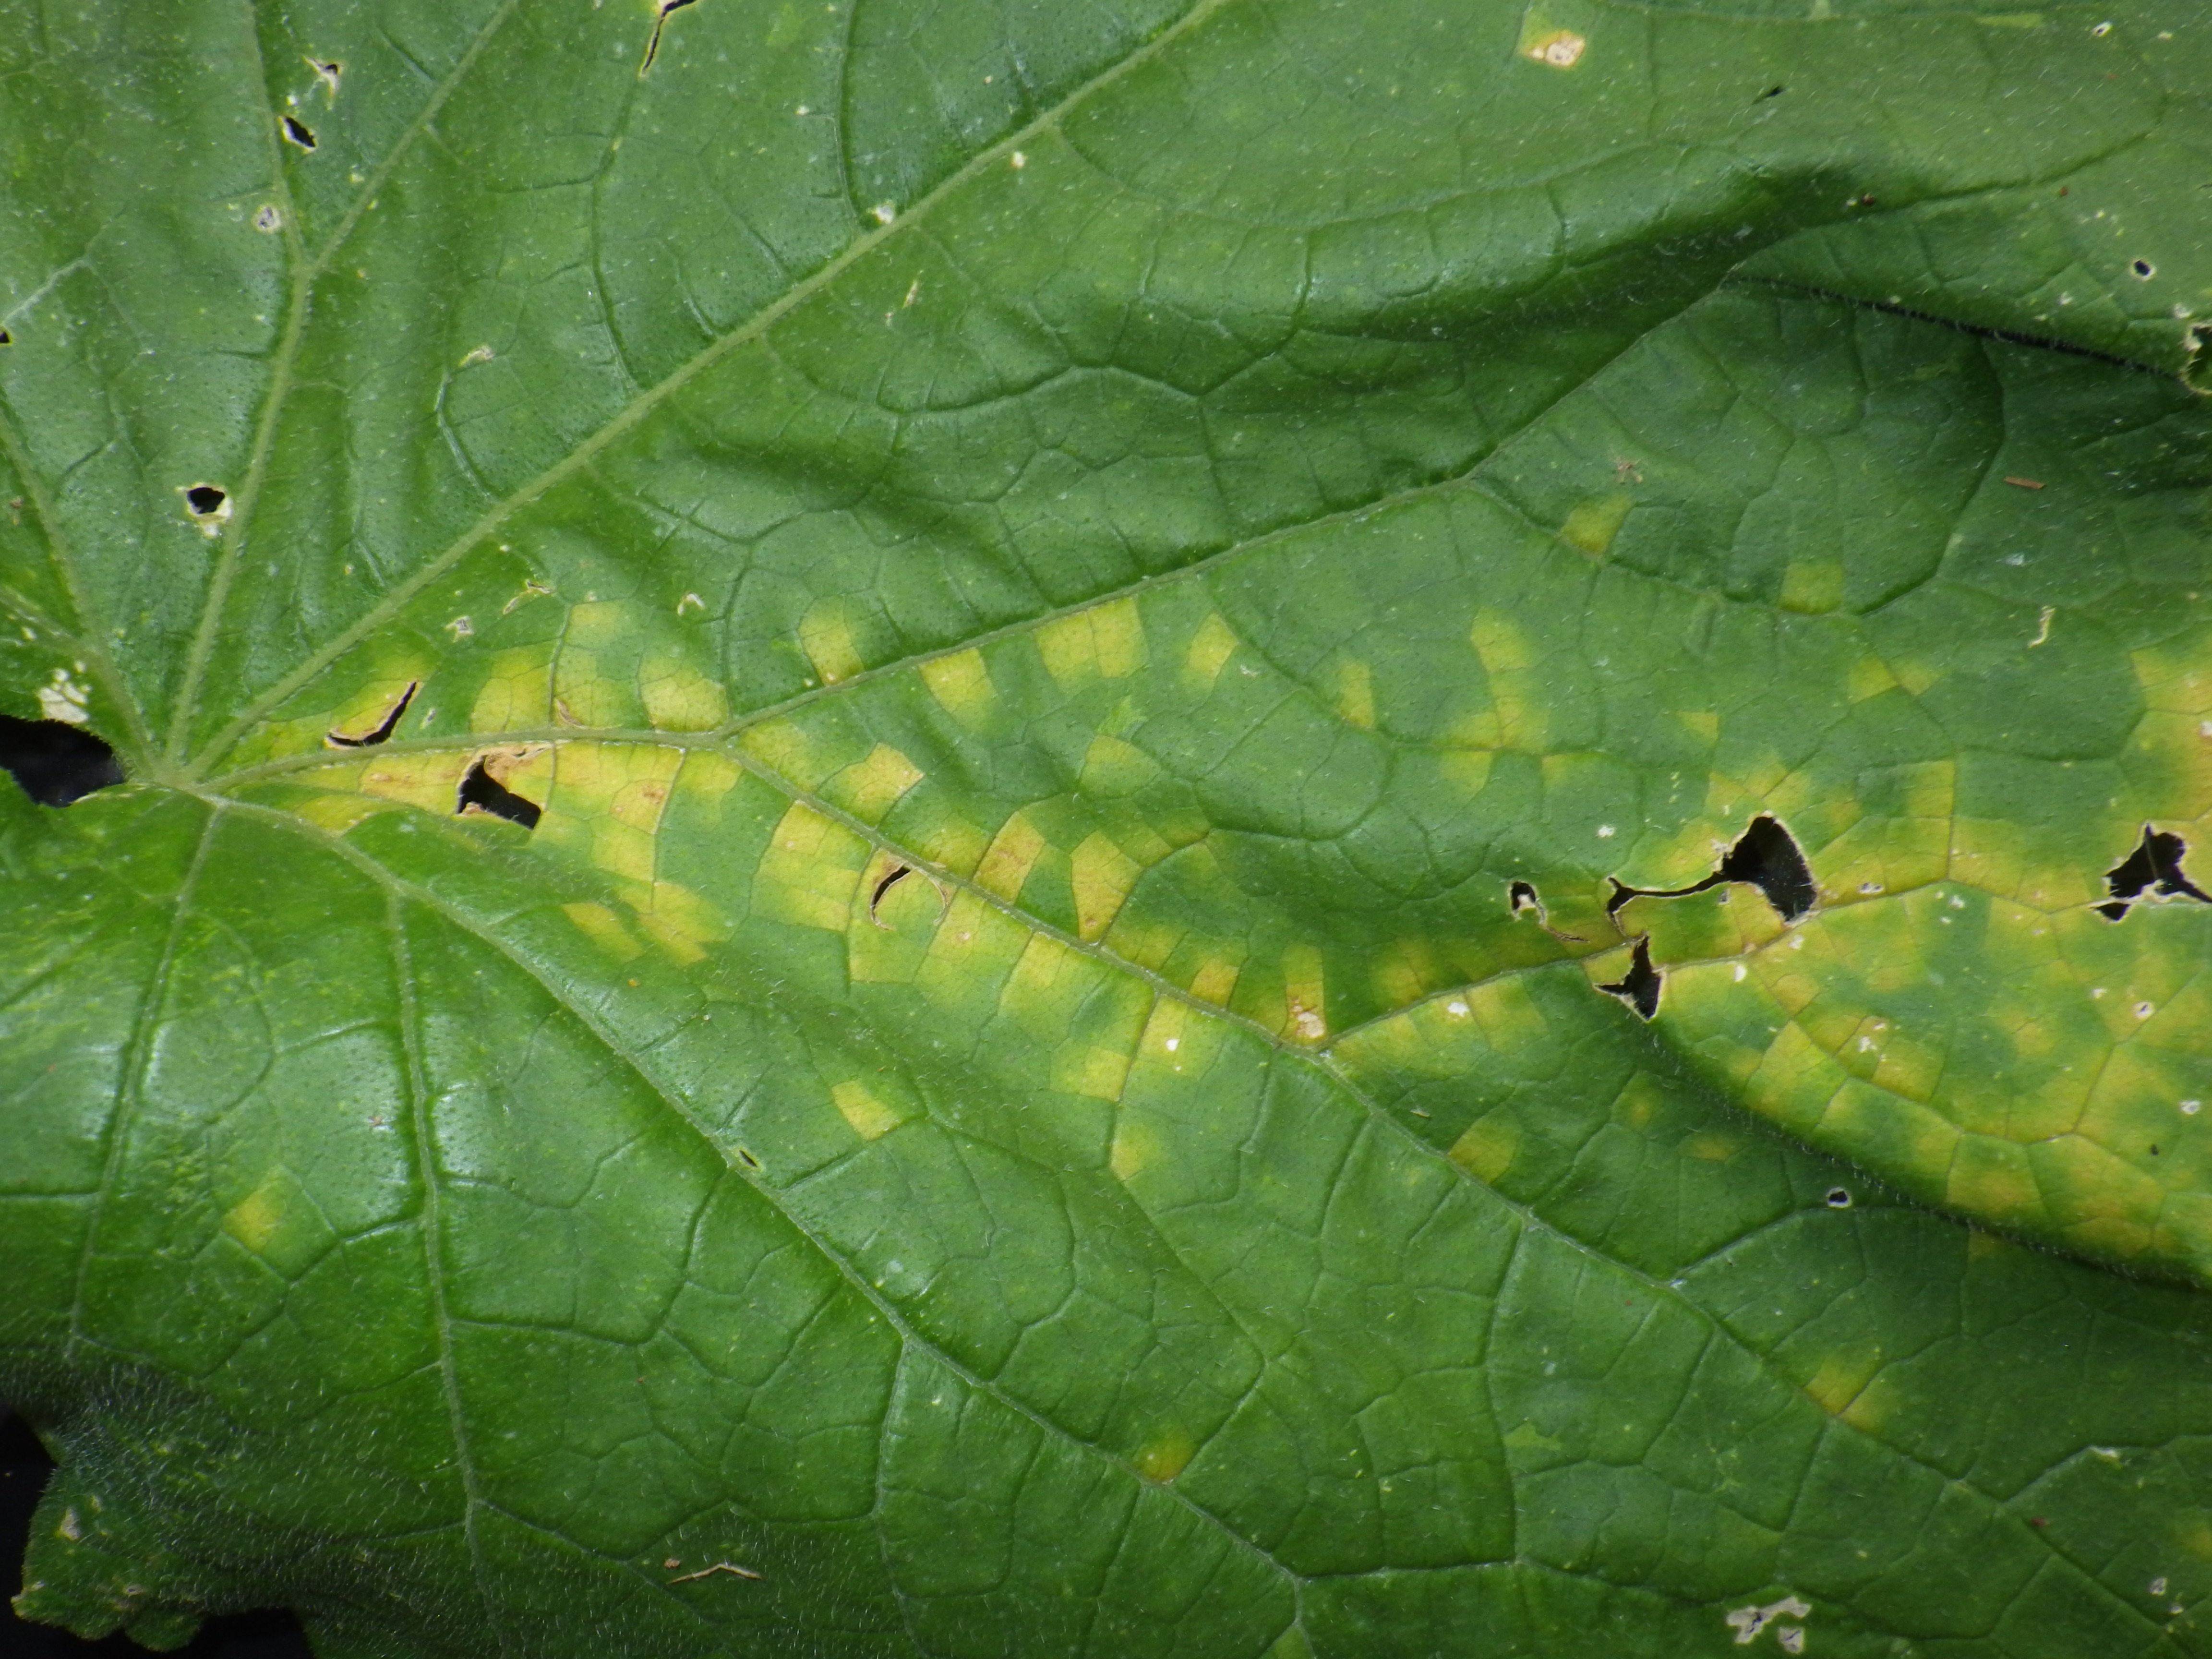 Close up of initial cucurbit downy mildew lesions on cucumber leaf, note angular shape of yellow lesions (Photo, Travis Birdsell, NCSU Extension Agent)